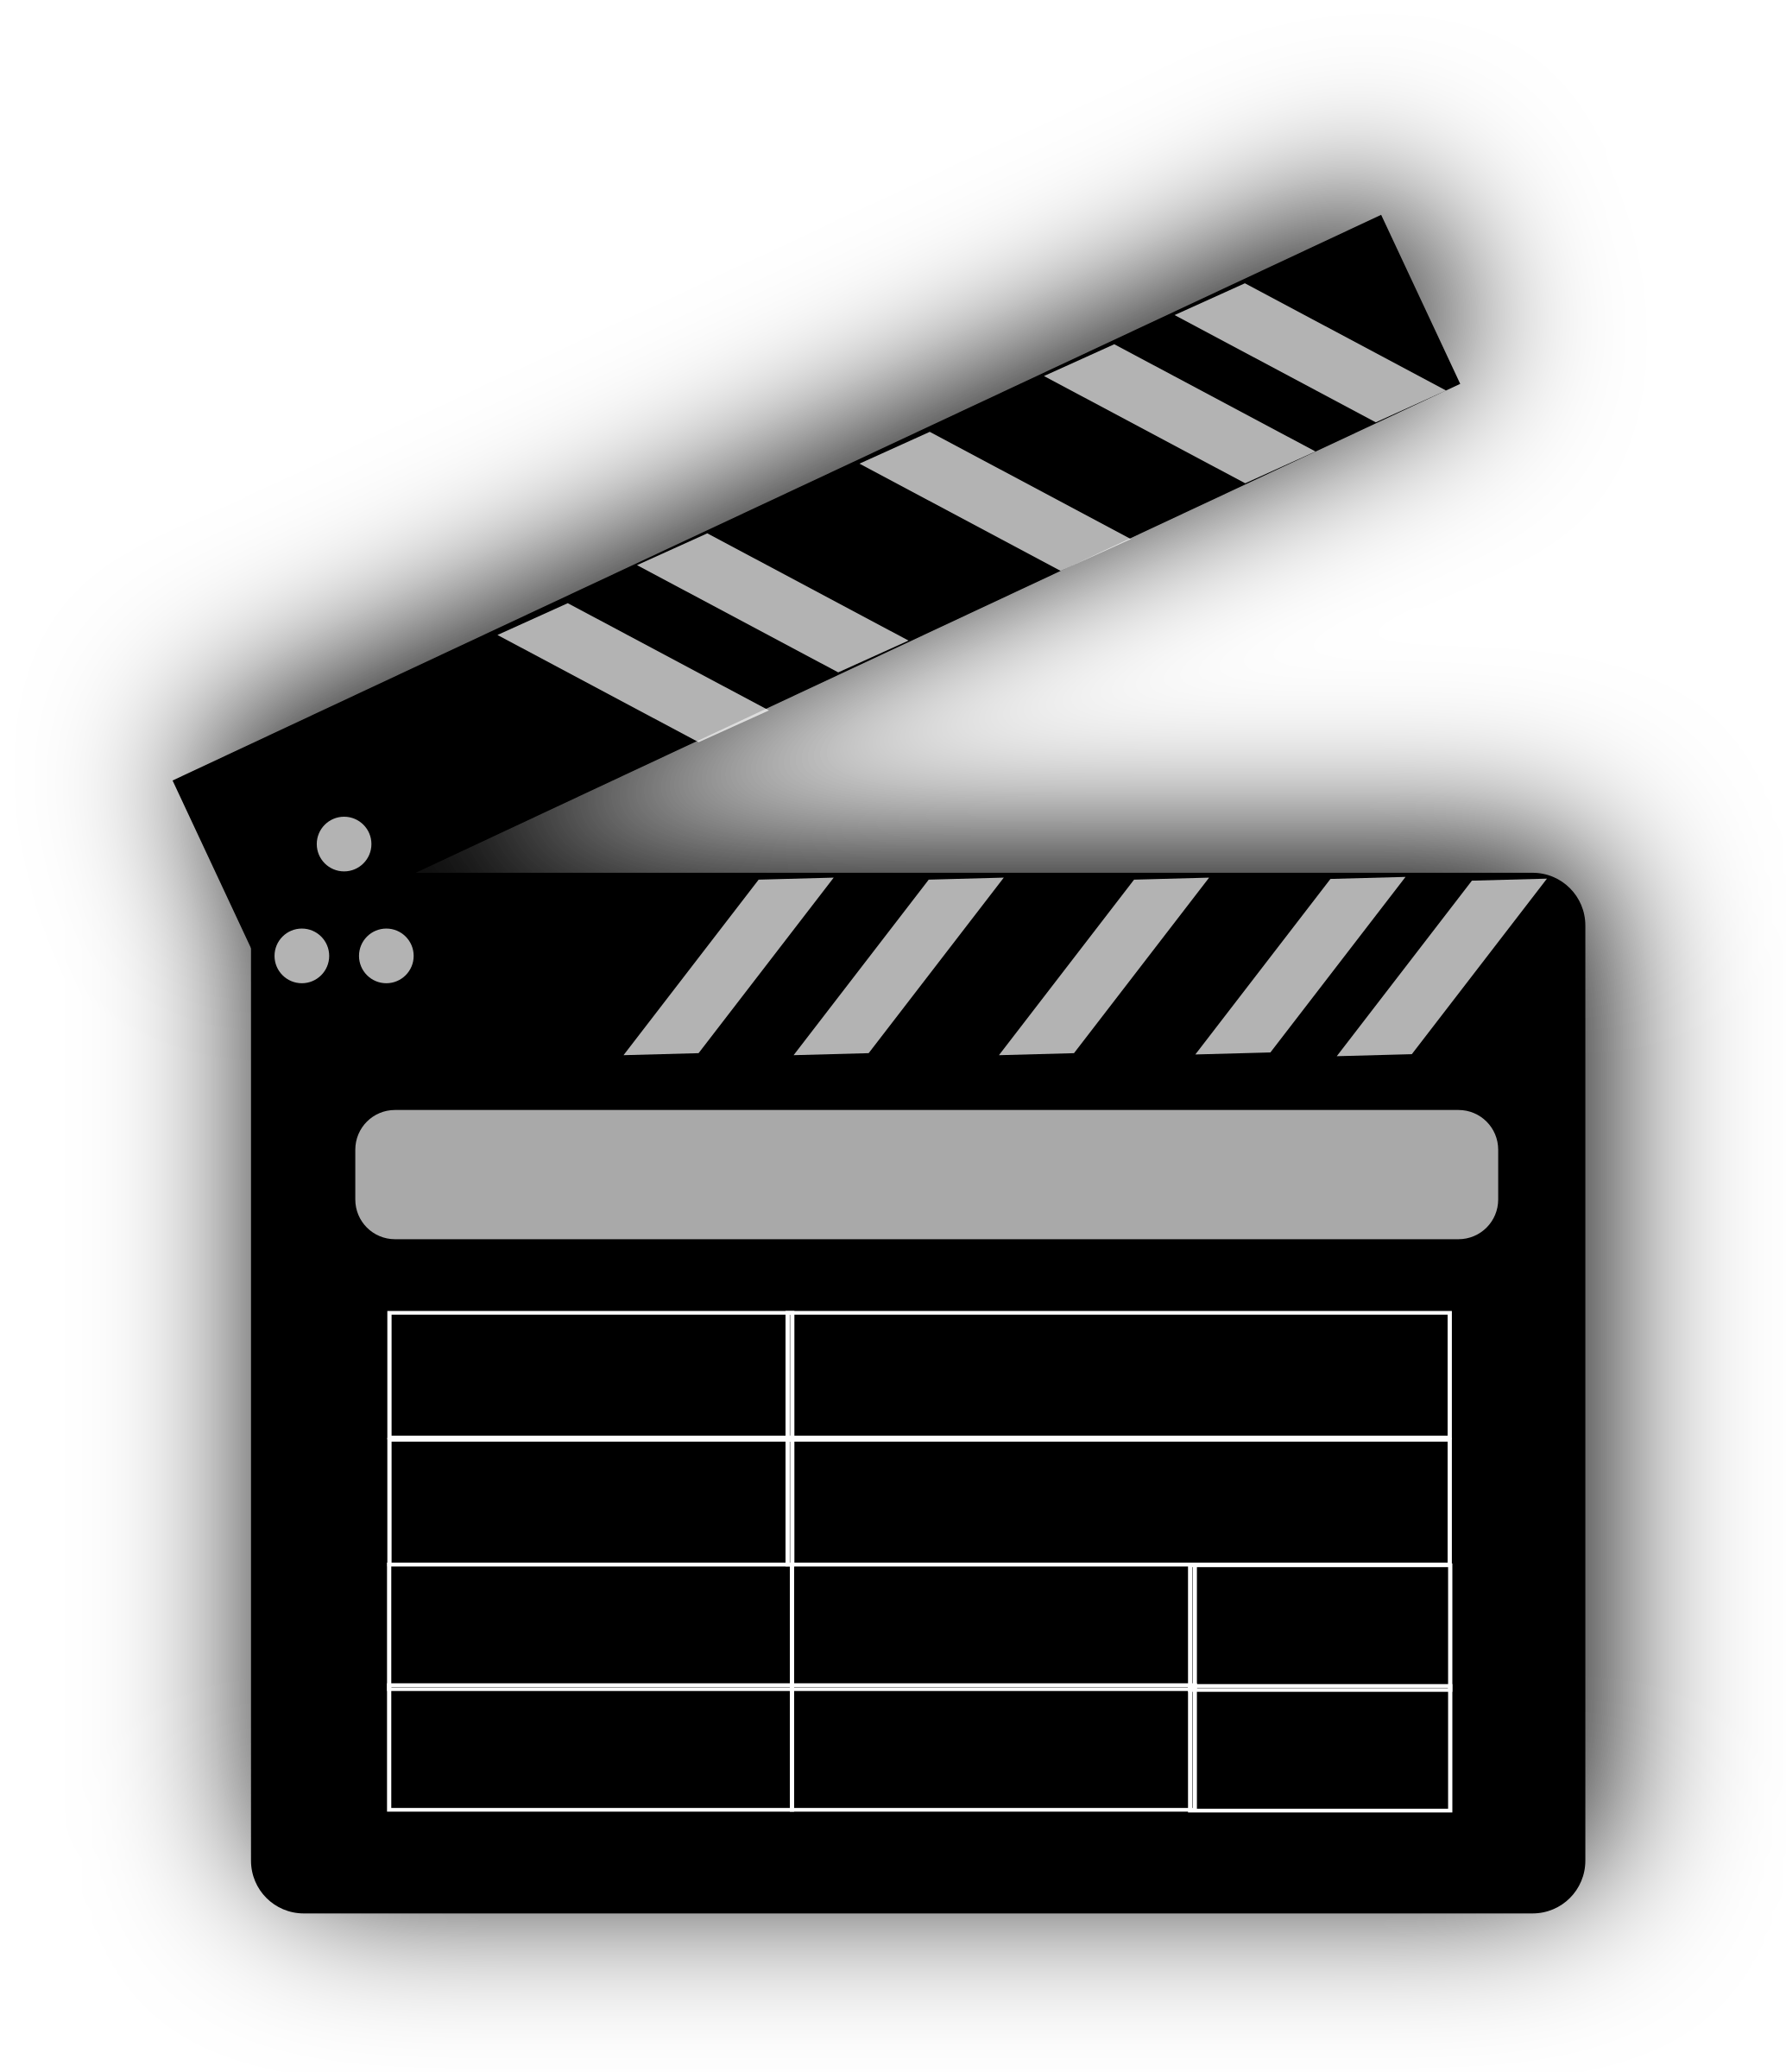 Clapper board icons png. Movie clipart movie logo